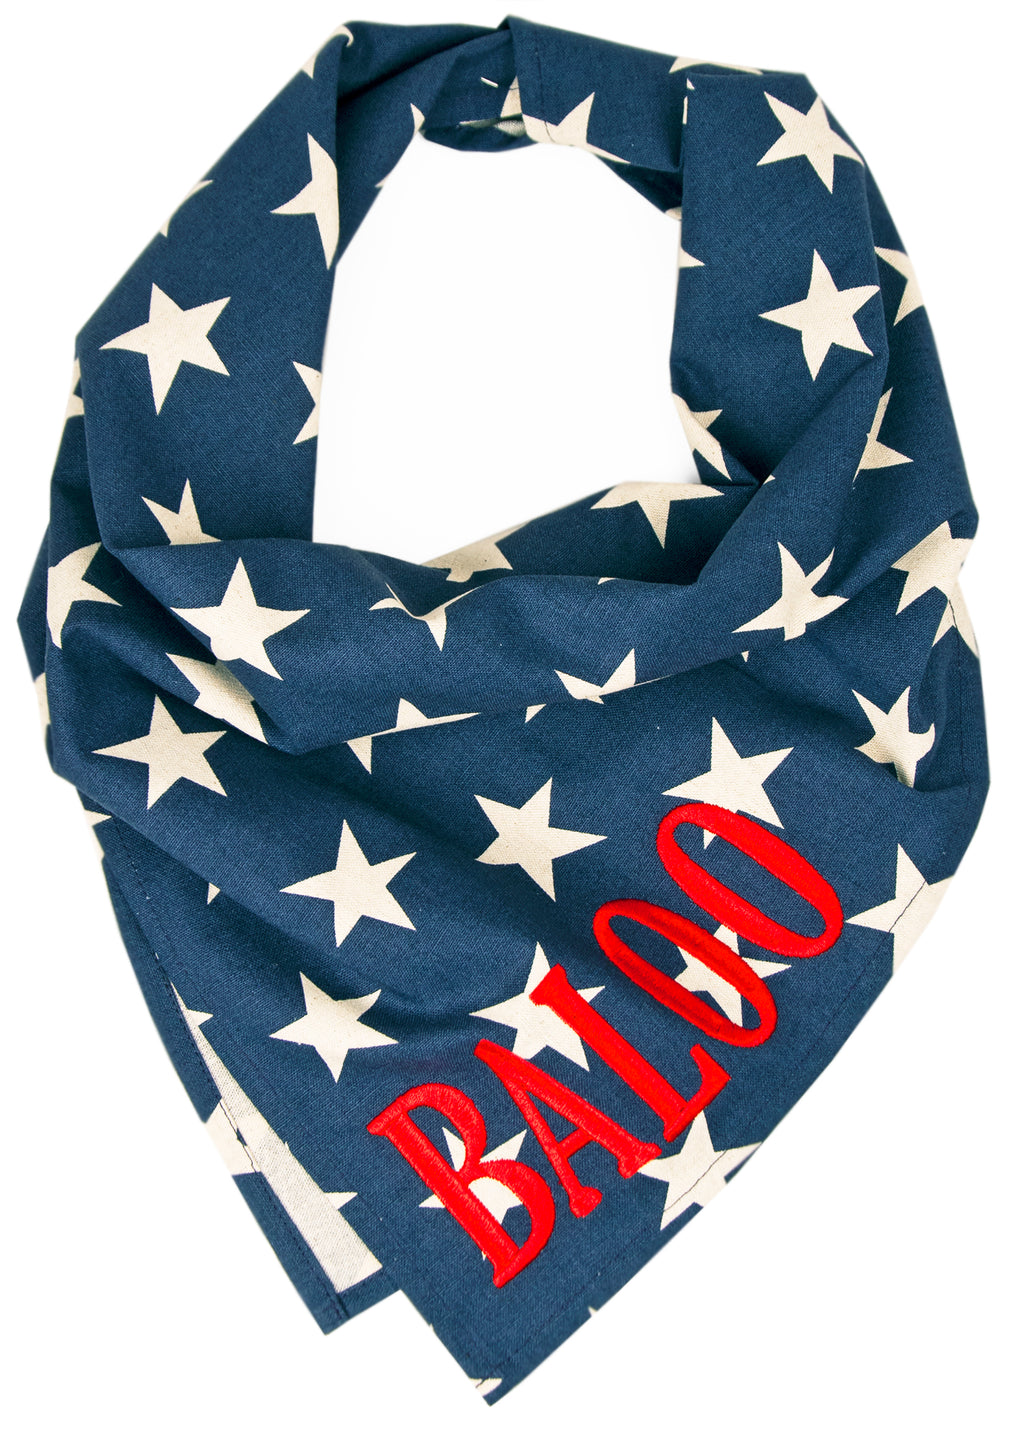 Star Spangled Dog Bandana